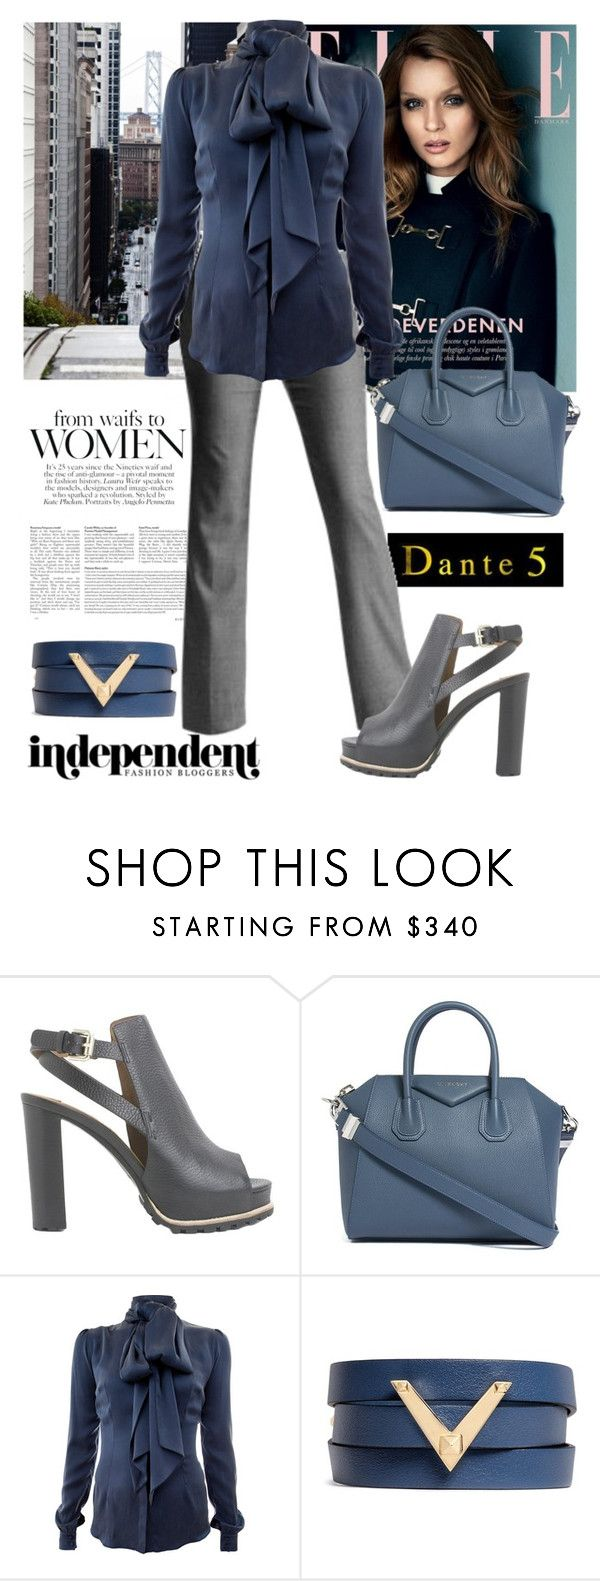 """""""dante5"""" by biljana-miric-ex-tomic ❤ liked on Polyvore featuring Børn, Gap, See by Chloé, Givenchy, Safiyaa, Valentino and dante5"""